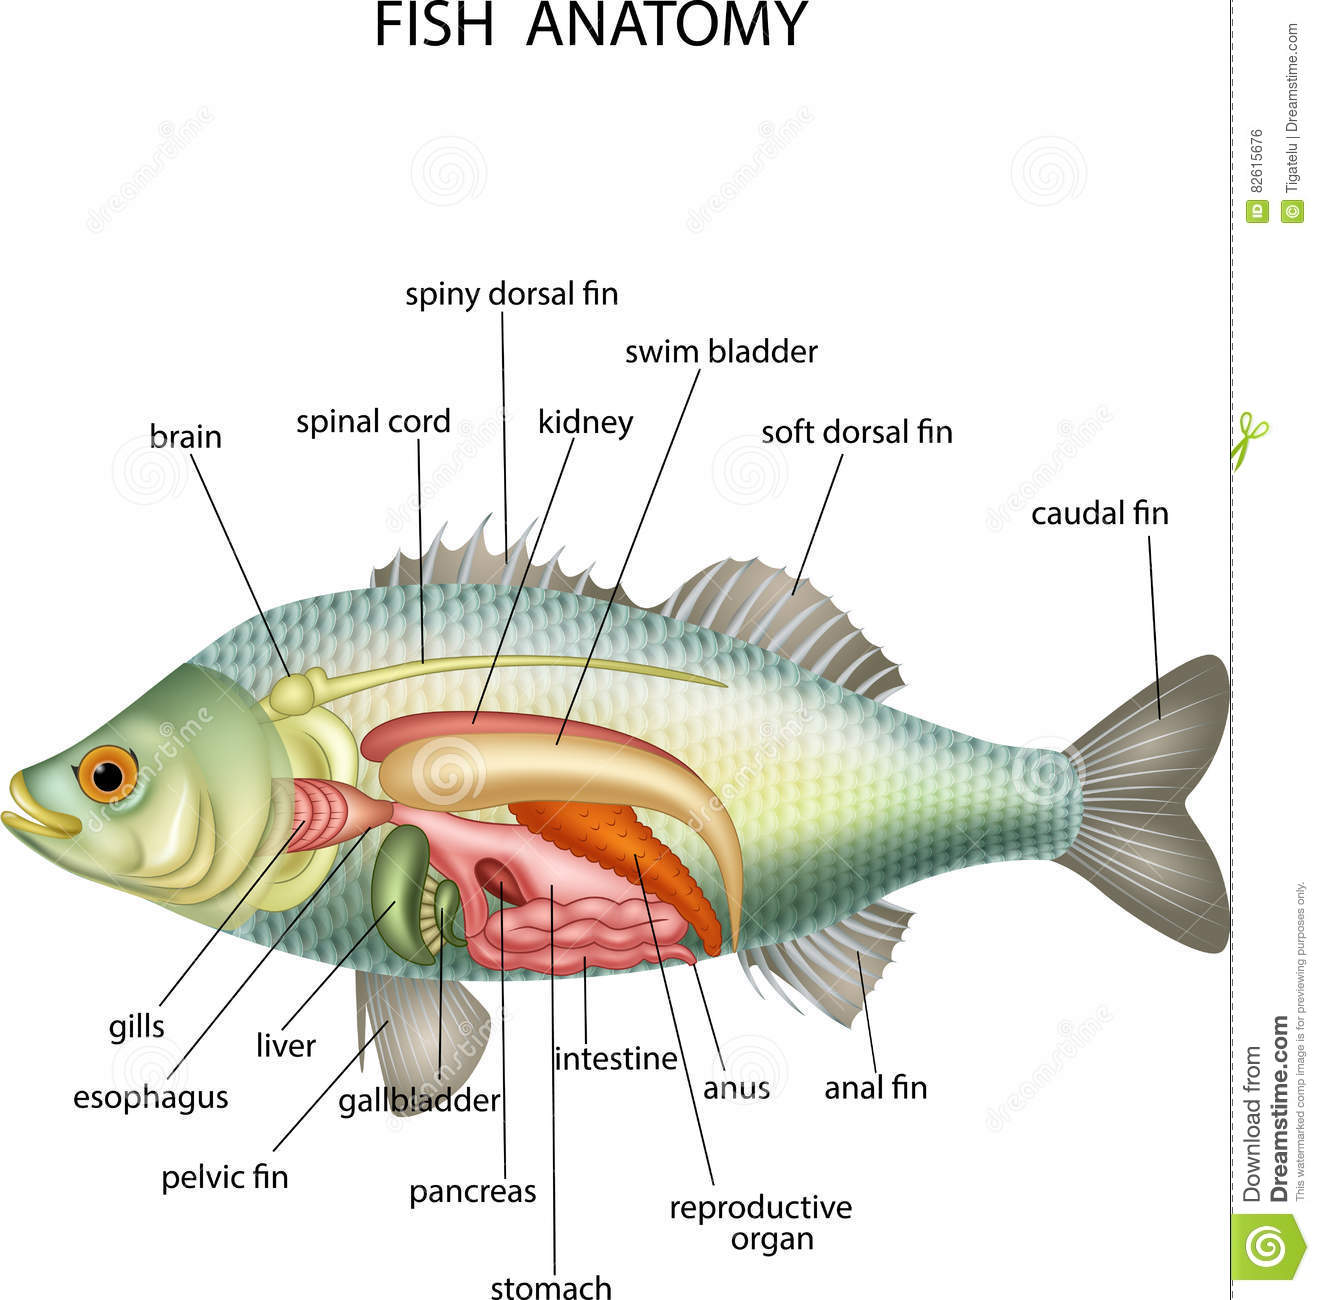 Bass Fish Anatomy Diagram - Circuit Connection Diagram •